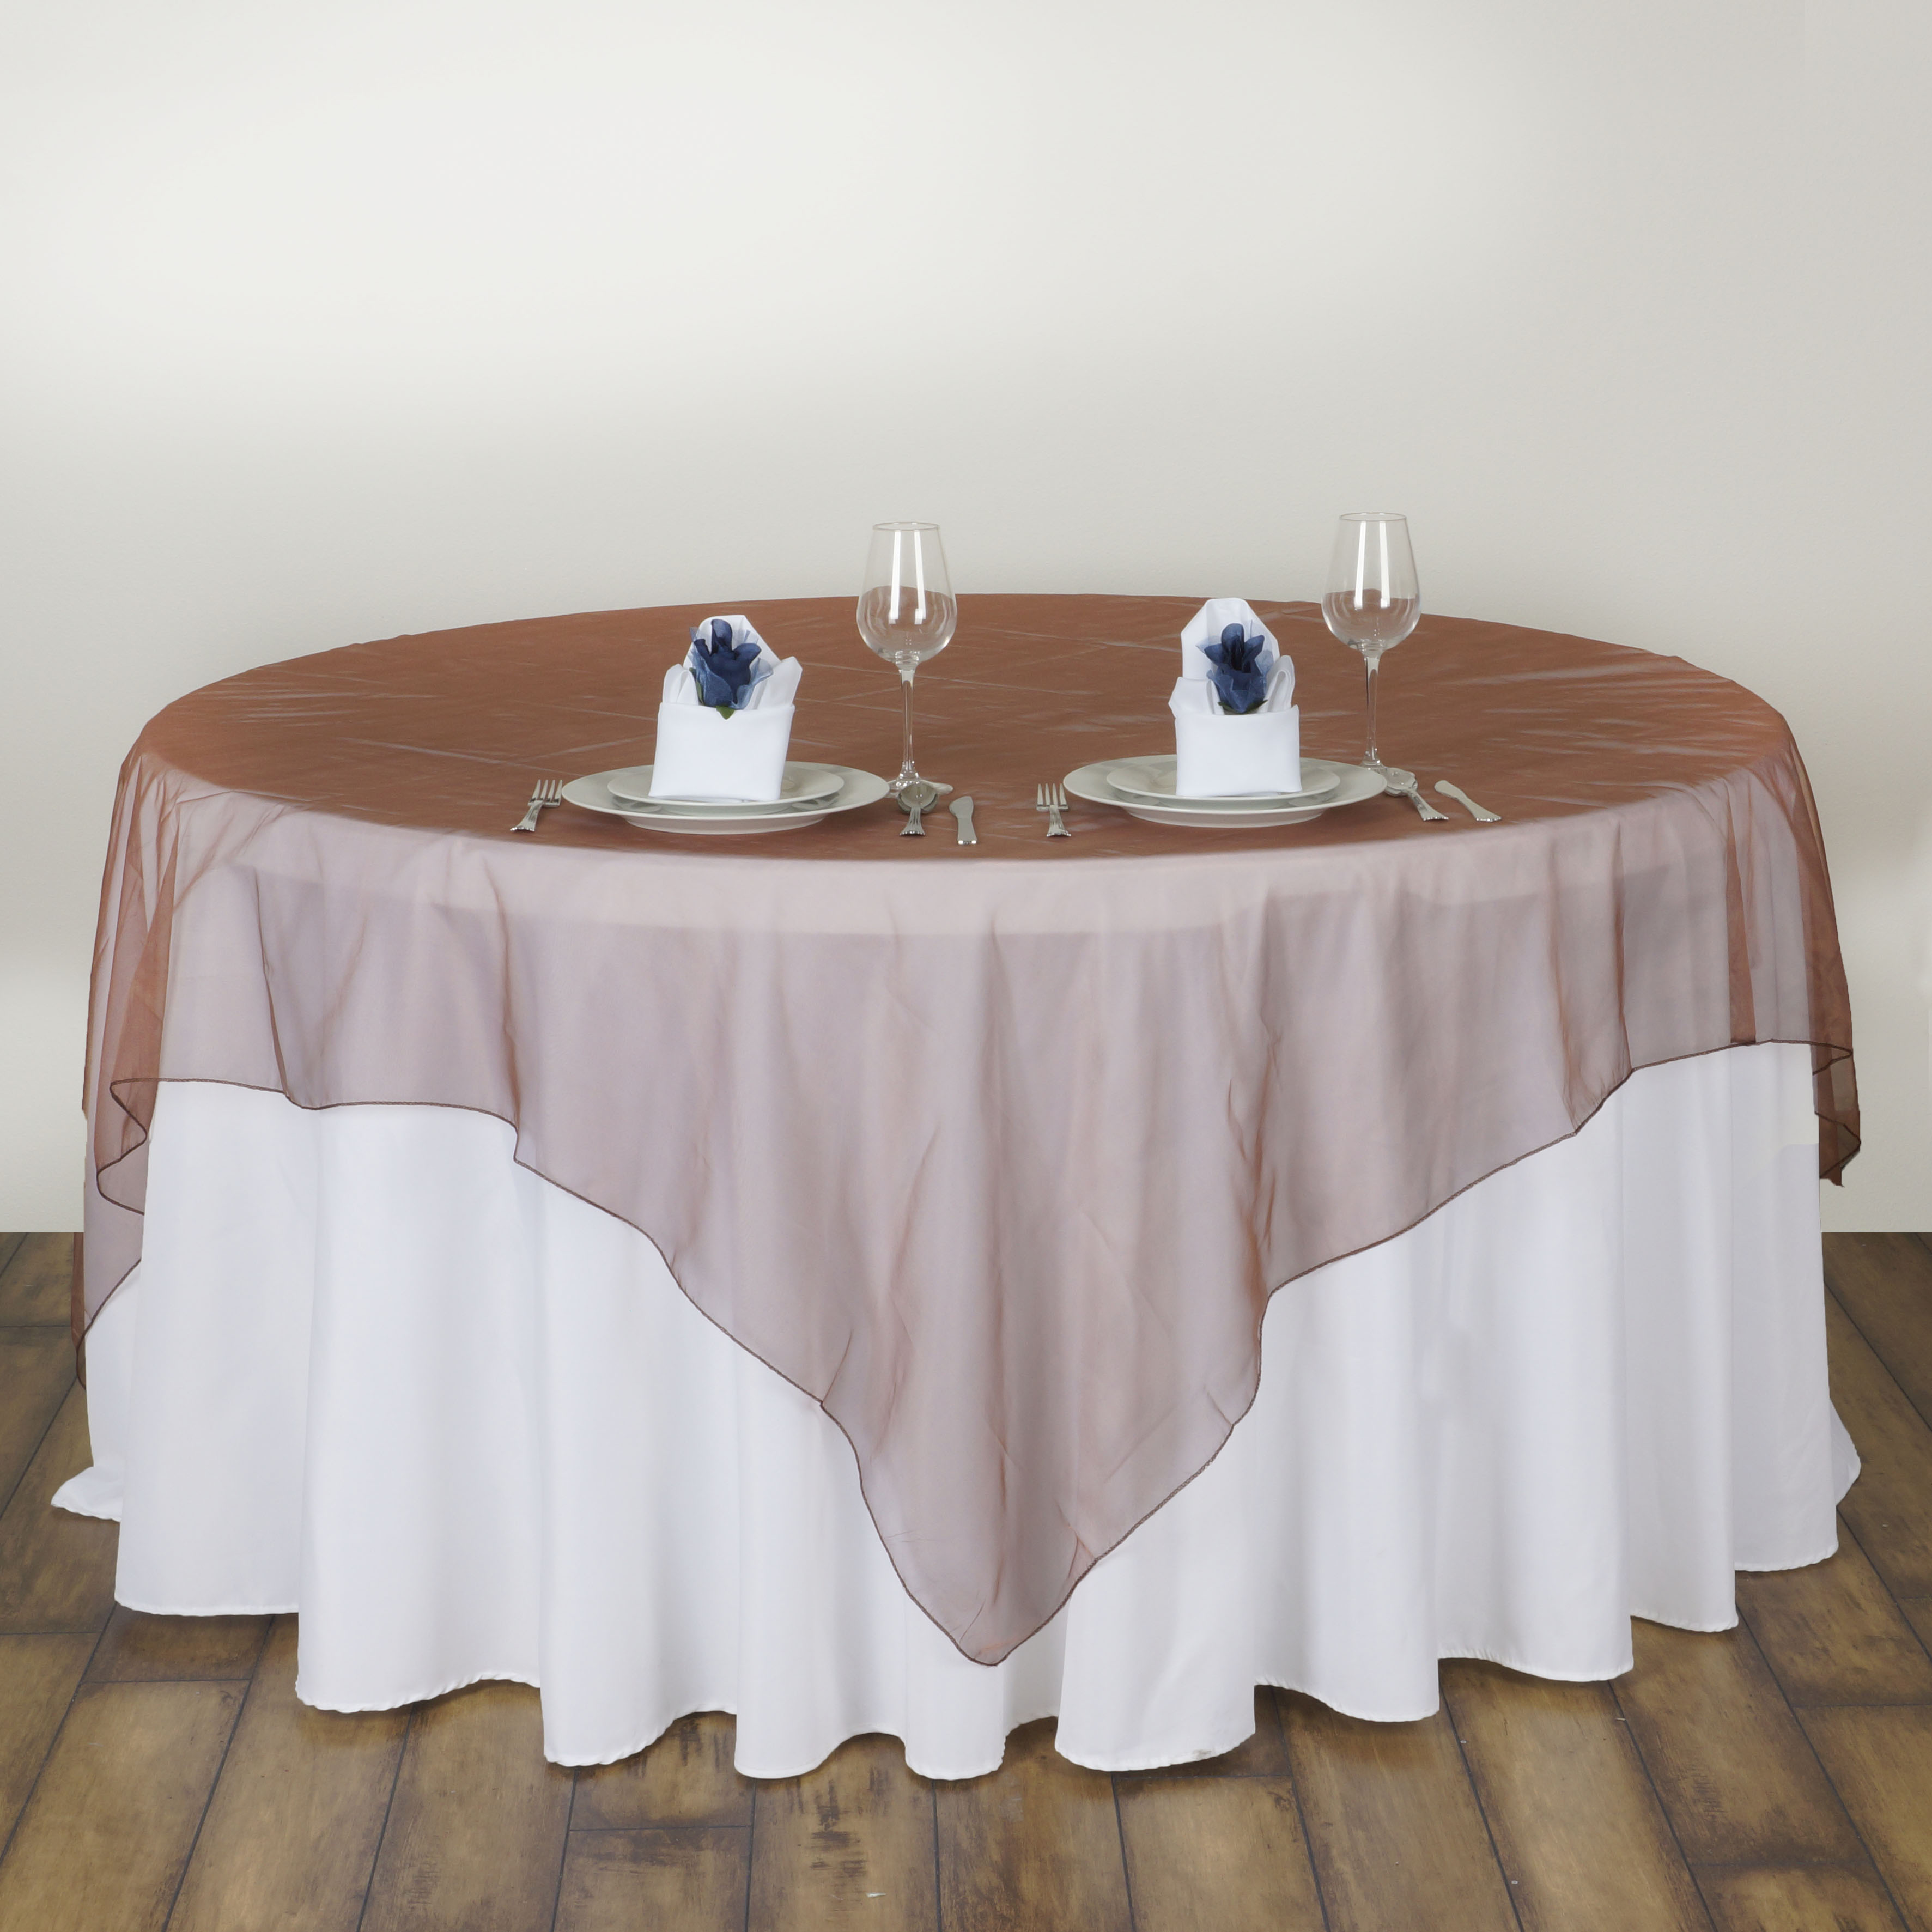 6 X Sheer Organza 60x60quot Square Table Overlays Toppers